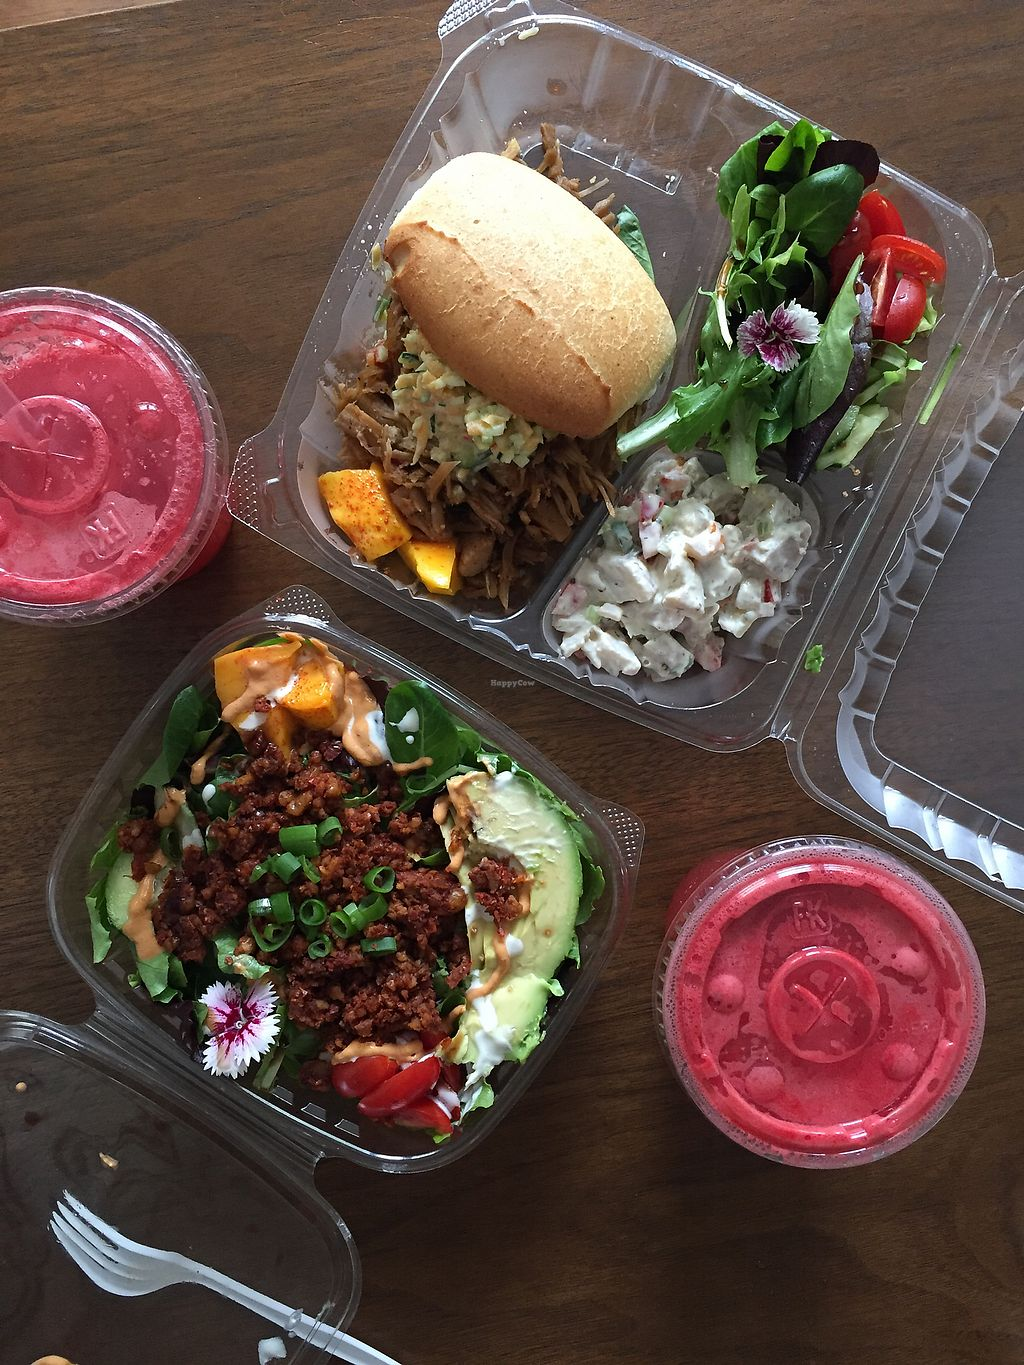 "Photo of Recipe Oak Cliff  by <a href=""/members/profile/ChristinaIsBlue"">ChristinaIsBlue</a> <br/>Jackfruit Sandwich and Taco Salad  <br/> August 18, 2017  - <a href='/contact/abuse/image/96694/294083'>Report</a>"